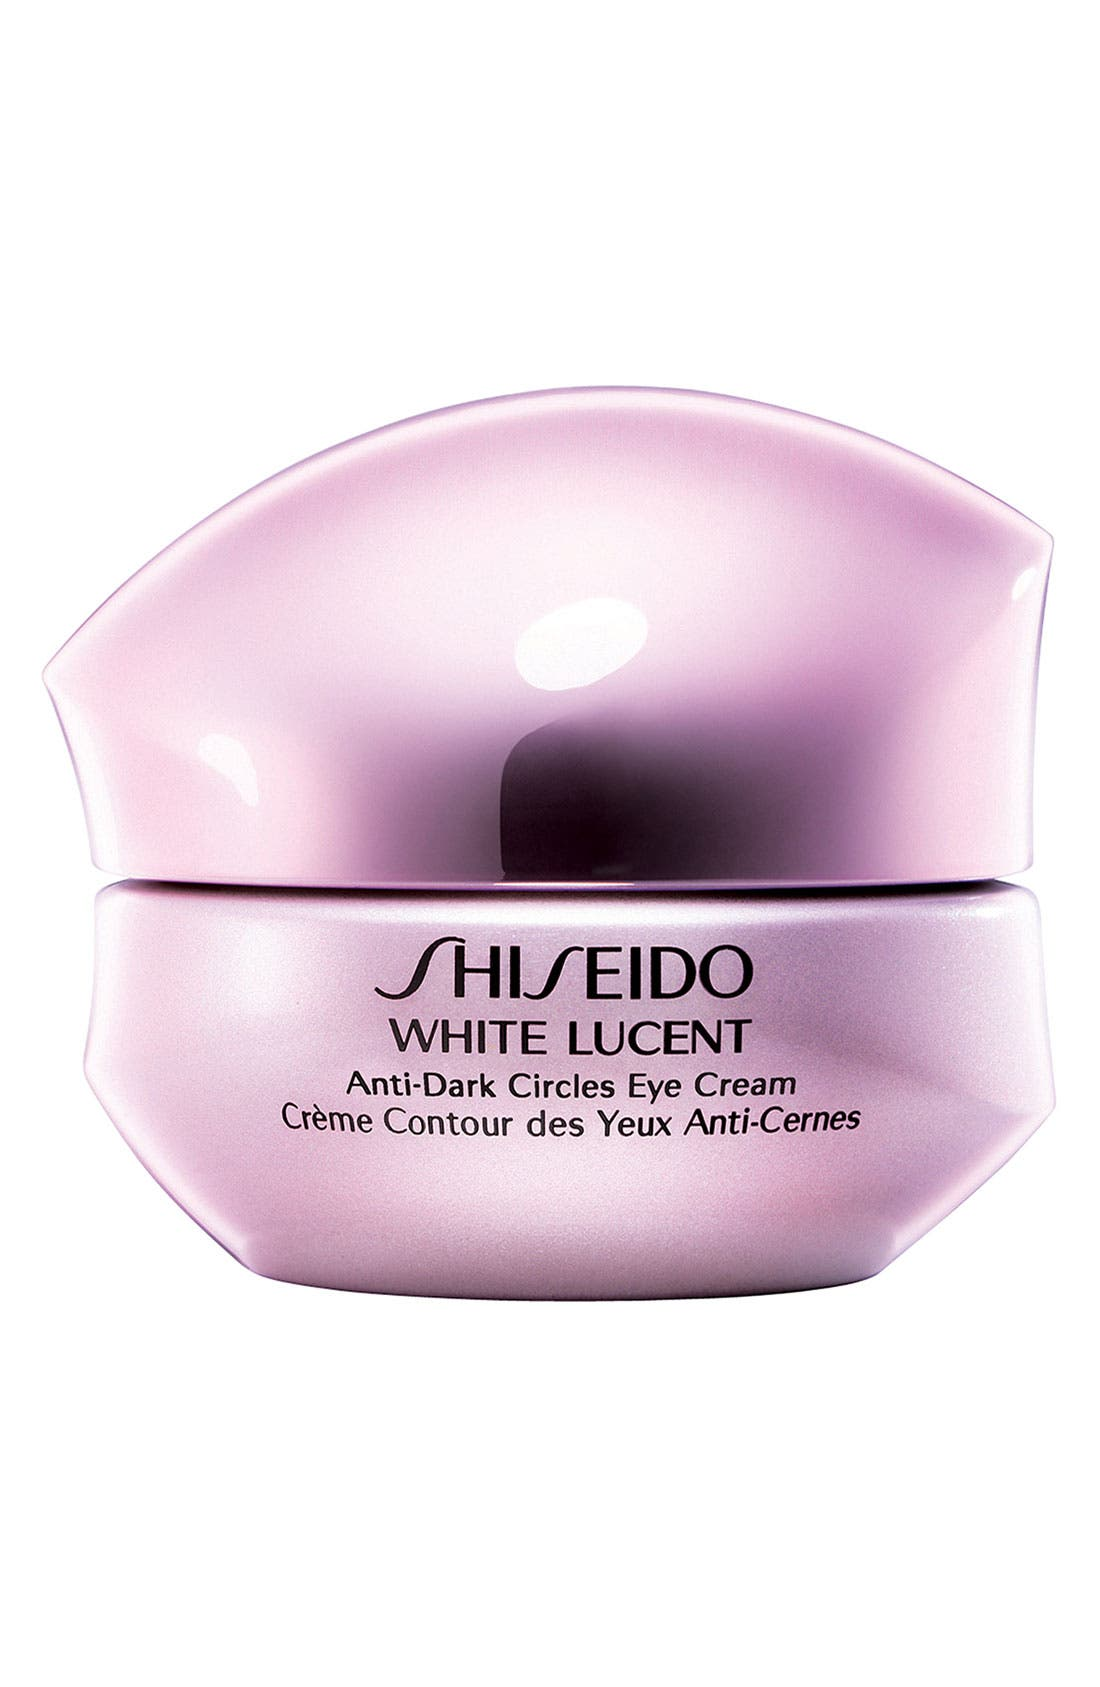 SHISEIDO, White Lucent Anti-Dark Circles Eye Cream, Main thumbnail 1, color, NO COLOR